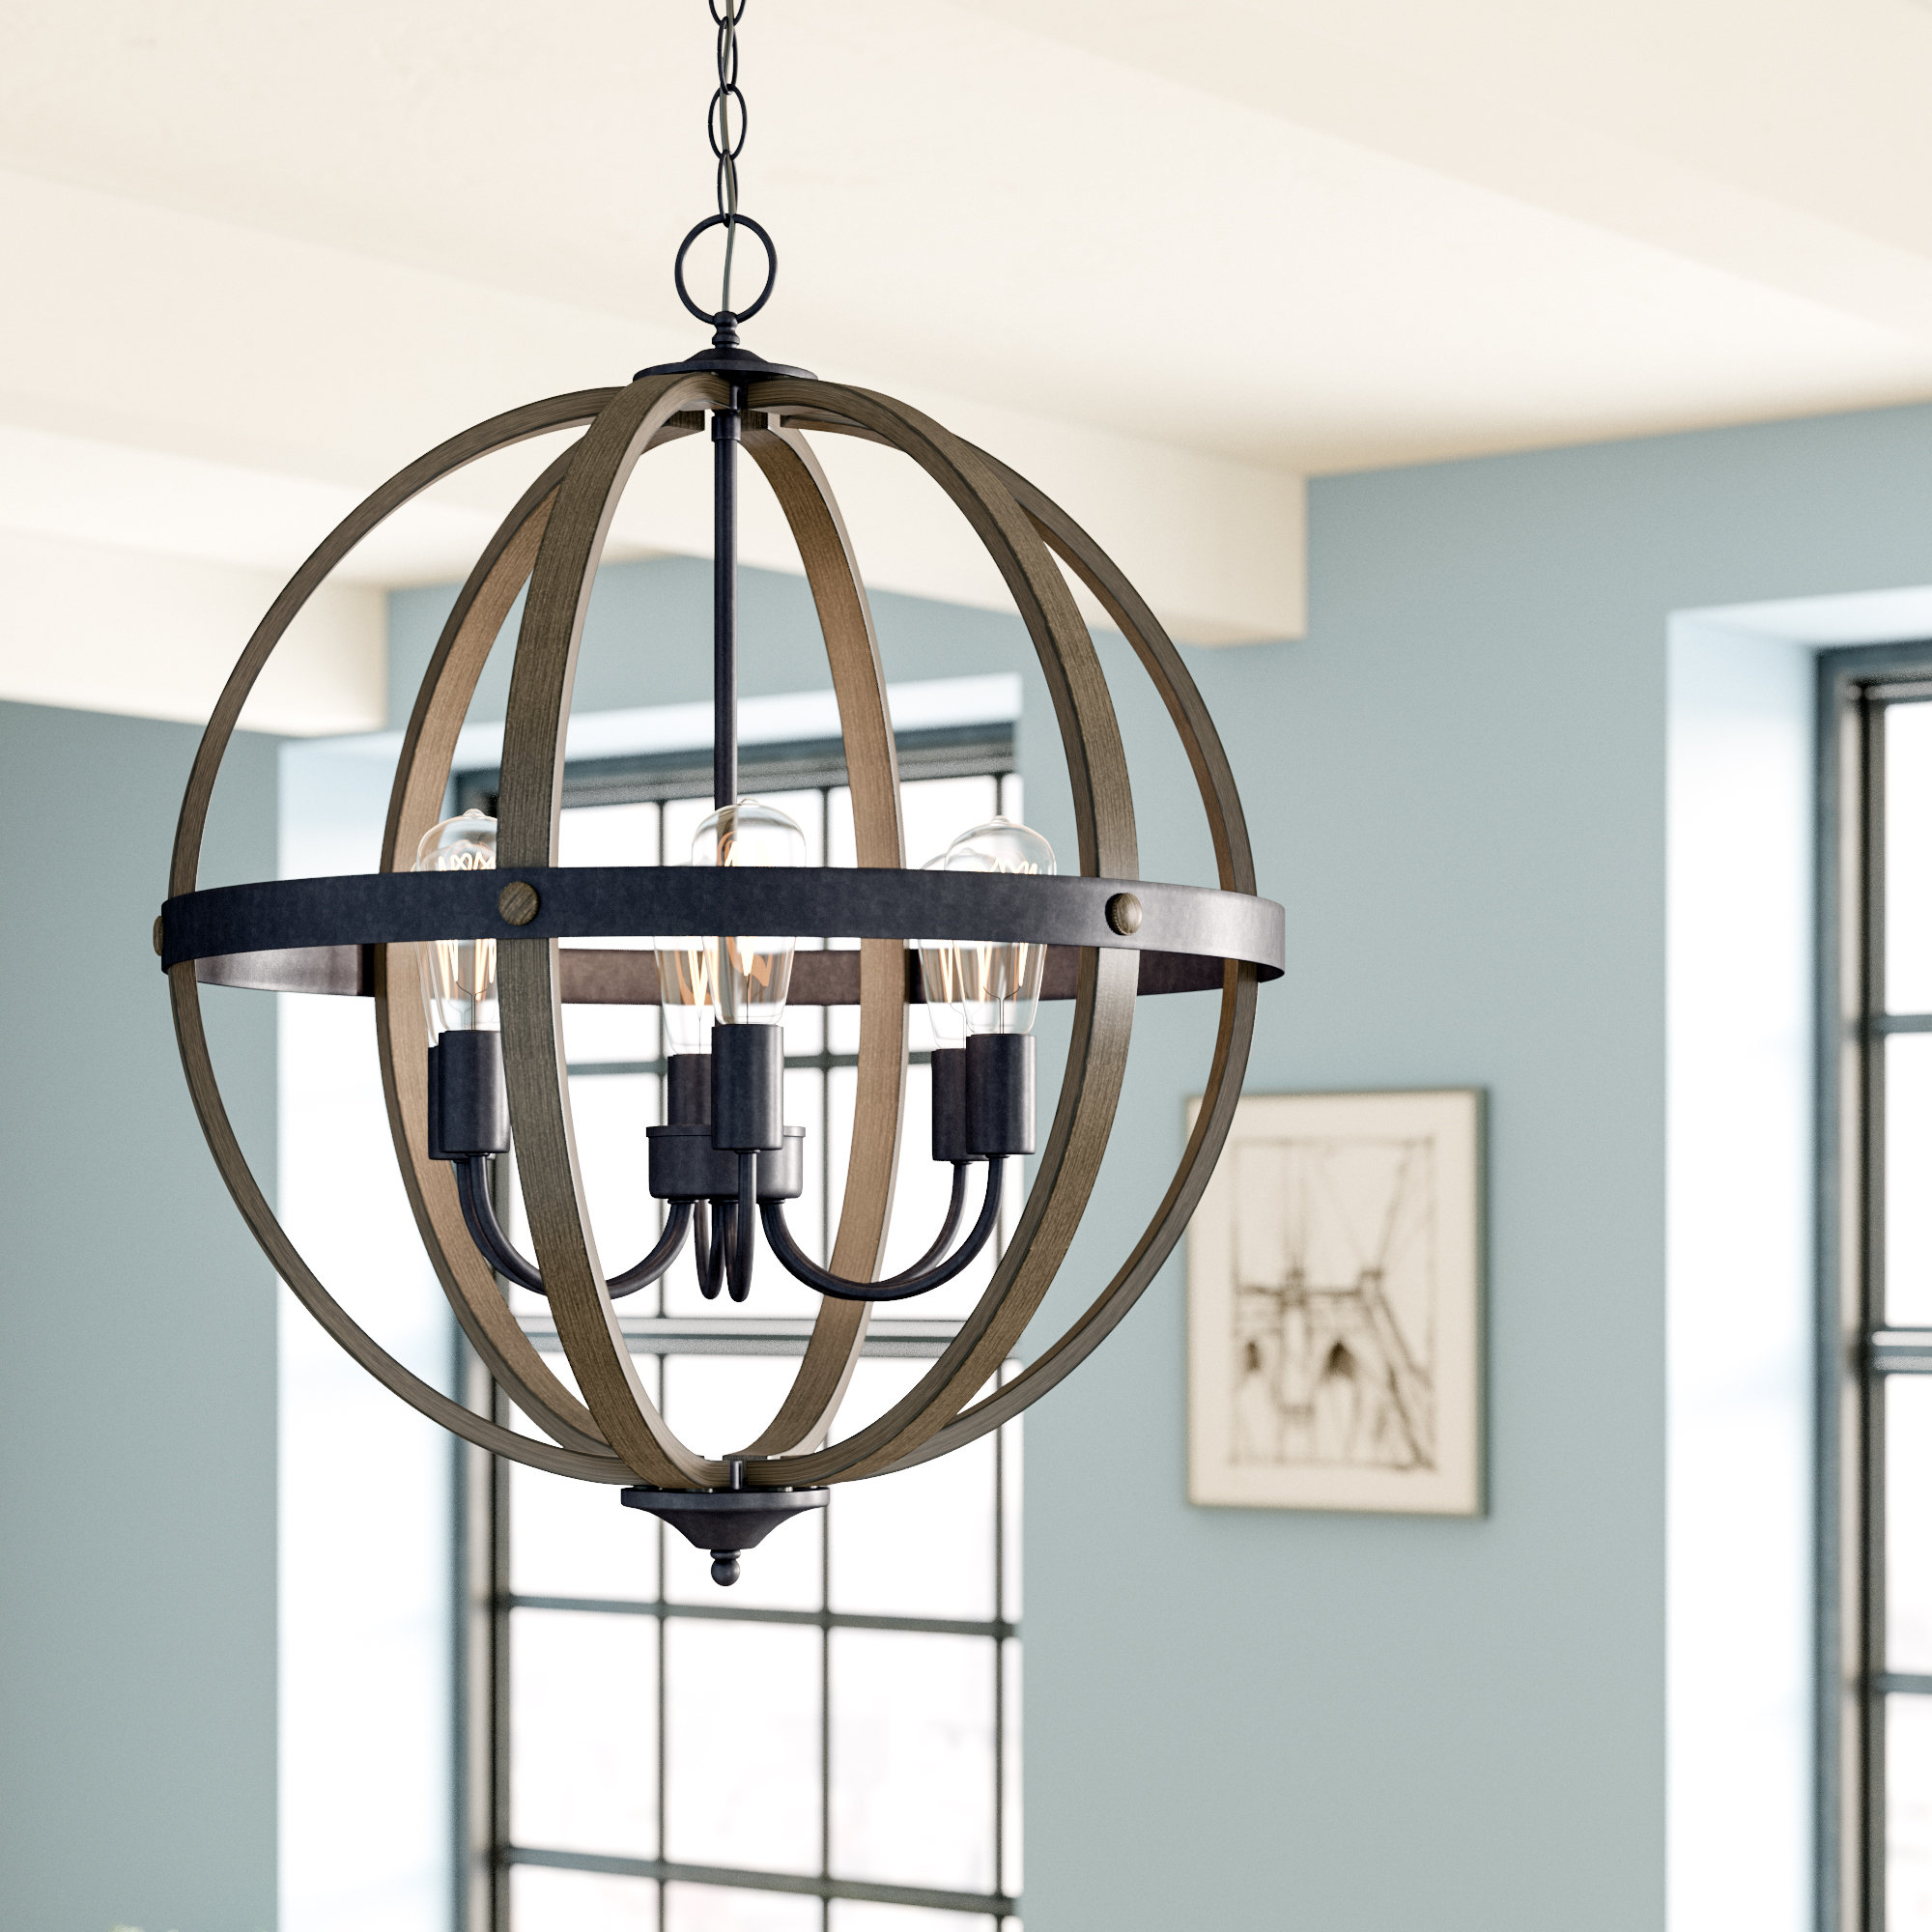 [%Globe Chandeliers Sale – Up To 65% Off Until September 30Th Within Latest Shipststour 3 Light Globe Chandeliers|Shipststour 3 Light Globe Chandeliers For Favorite Globe Chandeliers Sale – Up To 65% Off Until September 30Th|Well Known Shipststour 3 Light Globe Chandeliers Inside Globe Chandeliers Sale – Up To 65% Off Until September 30Th|2020 Globe Chandeliers Sale – Up To 65% Off Until September 30Th Pertaining To Shipststour 3 Light Globe Chandeliers%] (View 1 of 20)